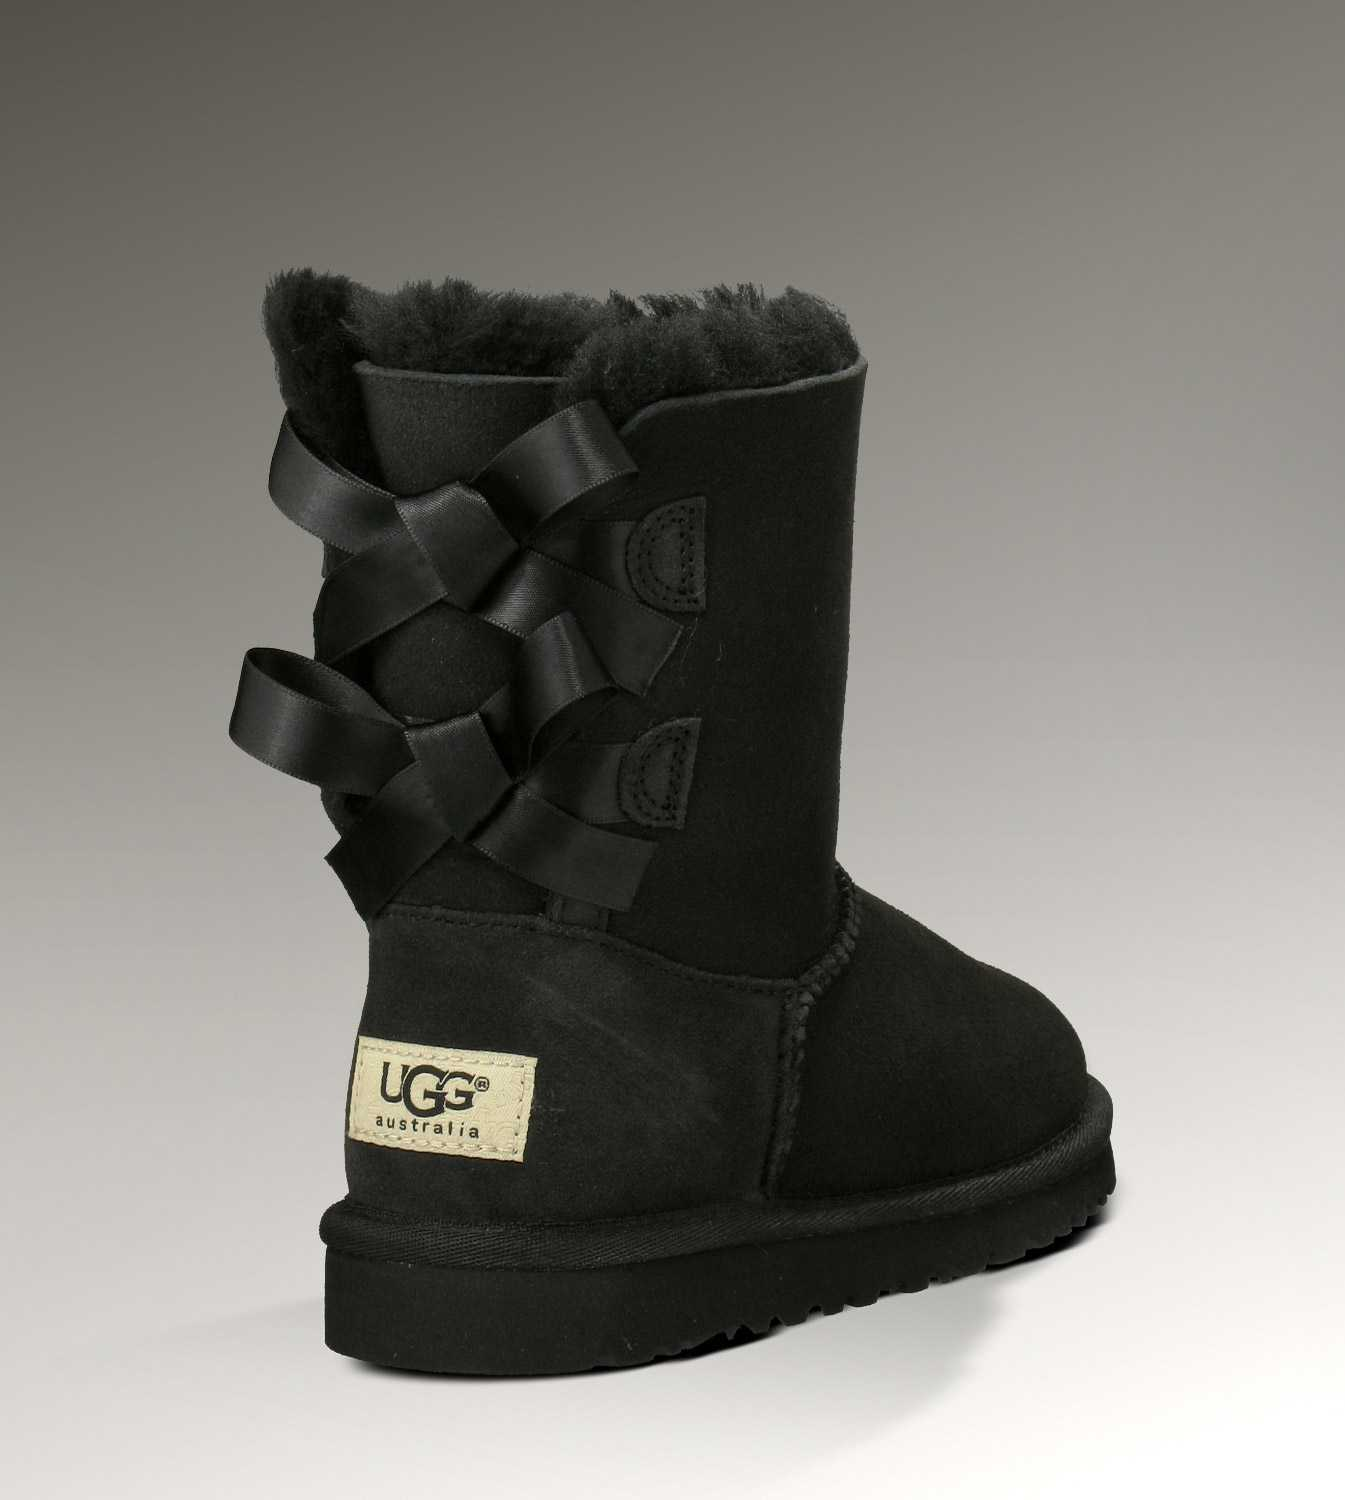 nouvelle collection ugg 2017